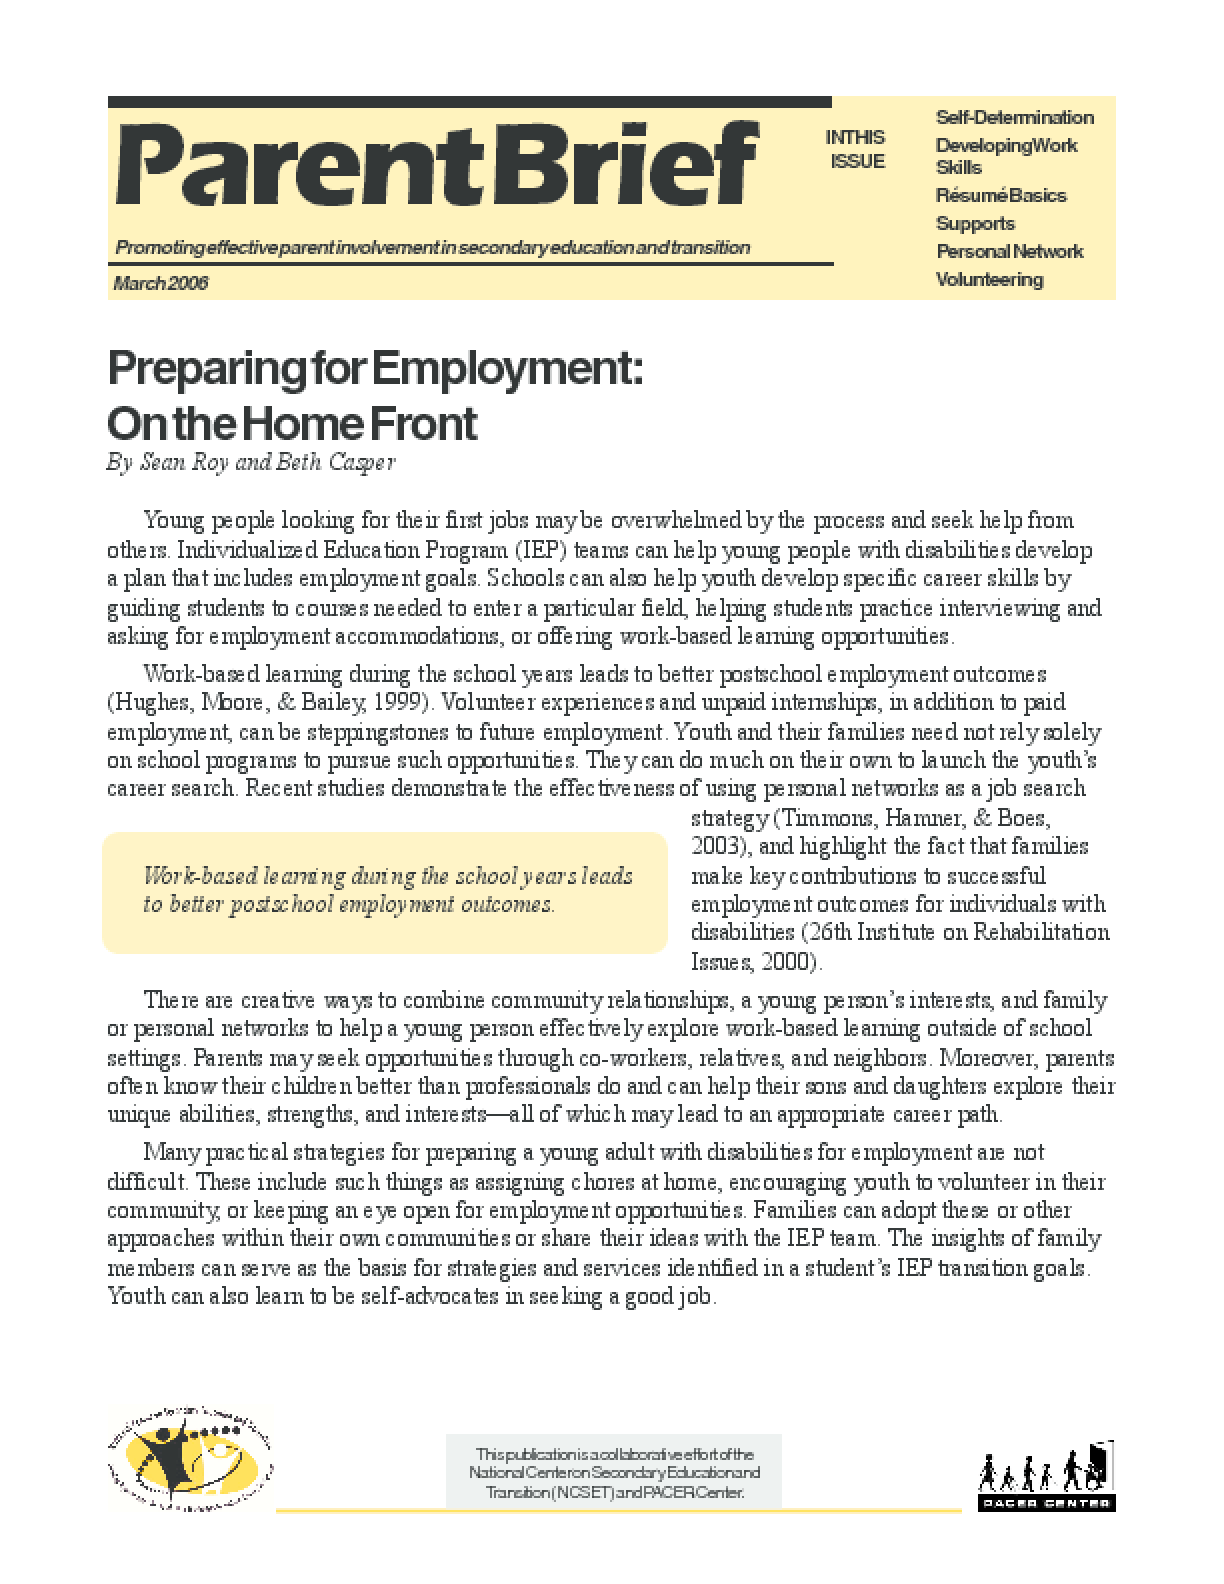 Preparing for Employment: On the Home Front